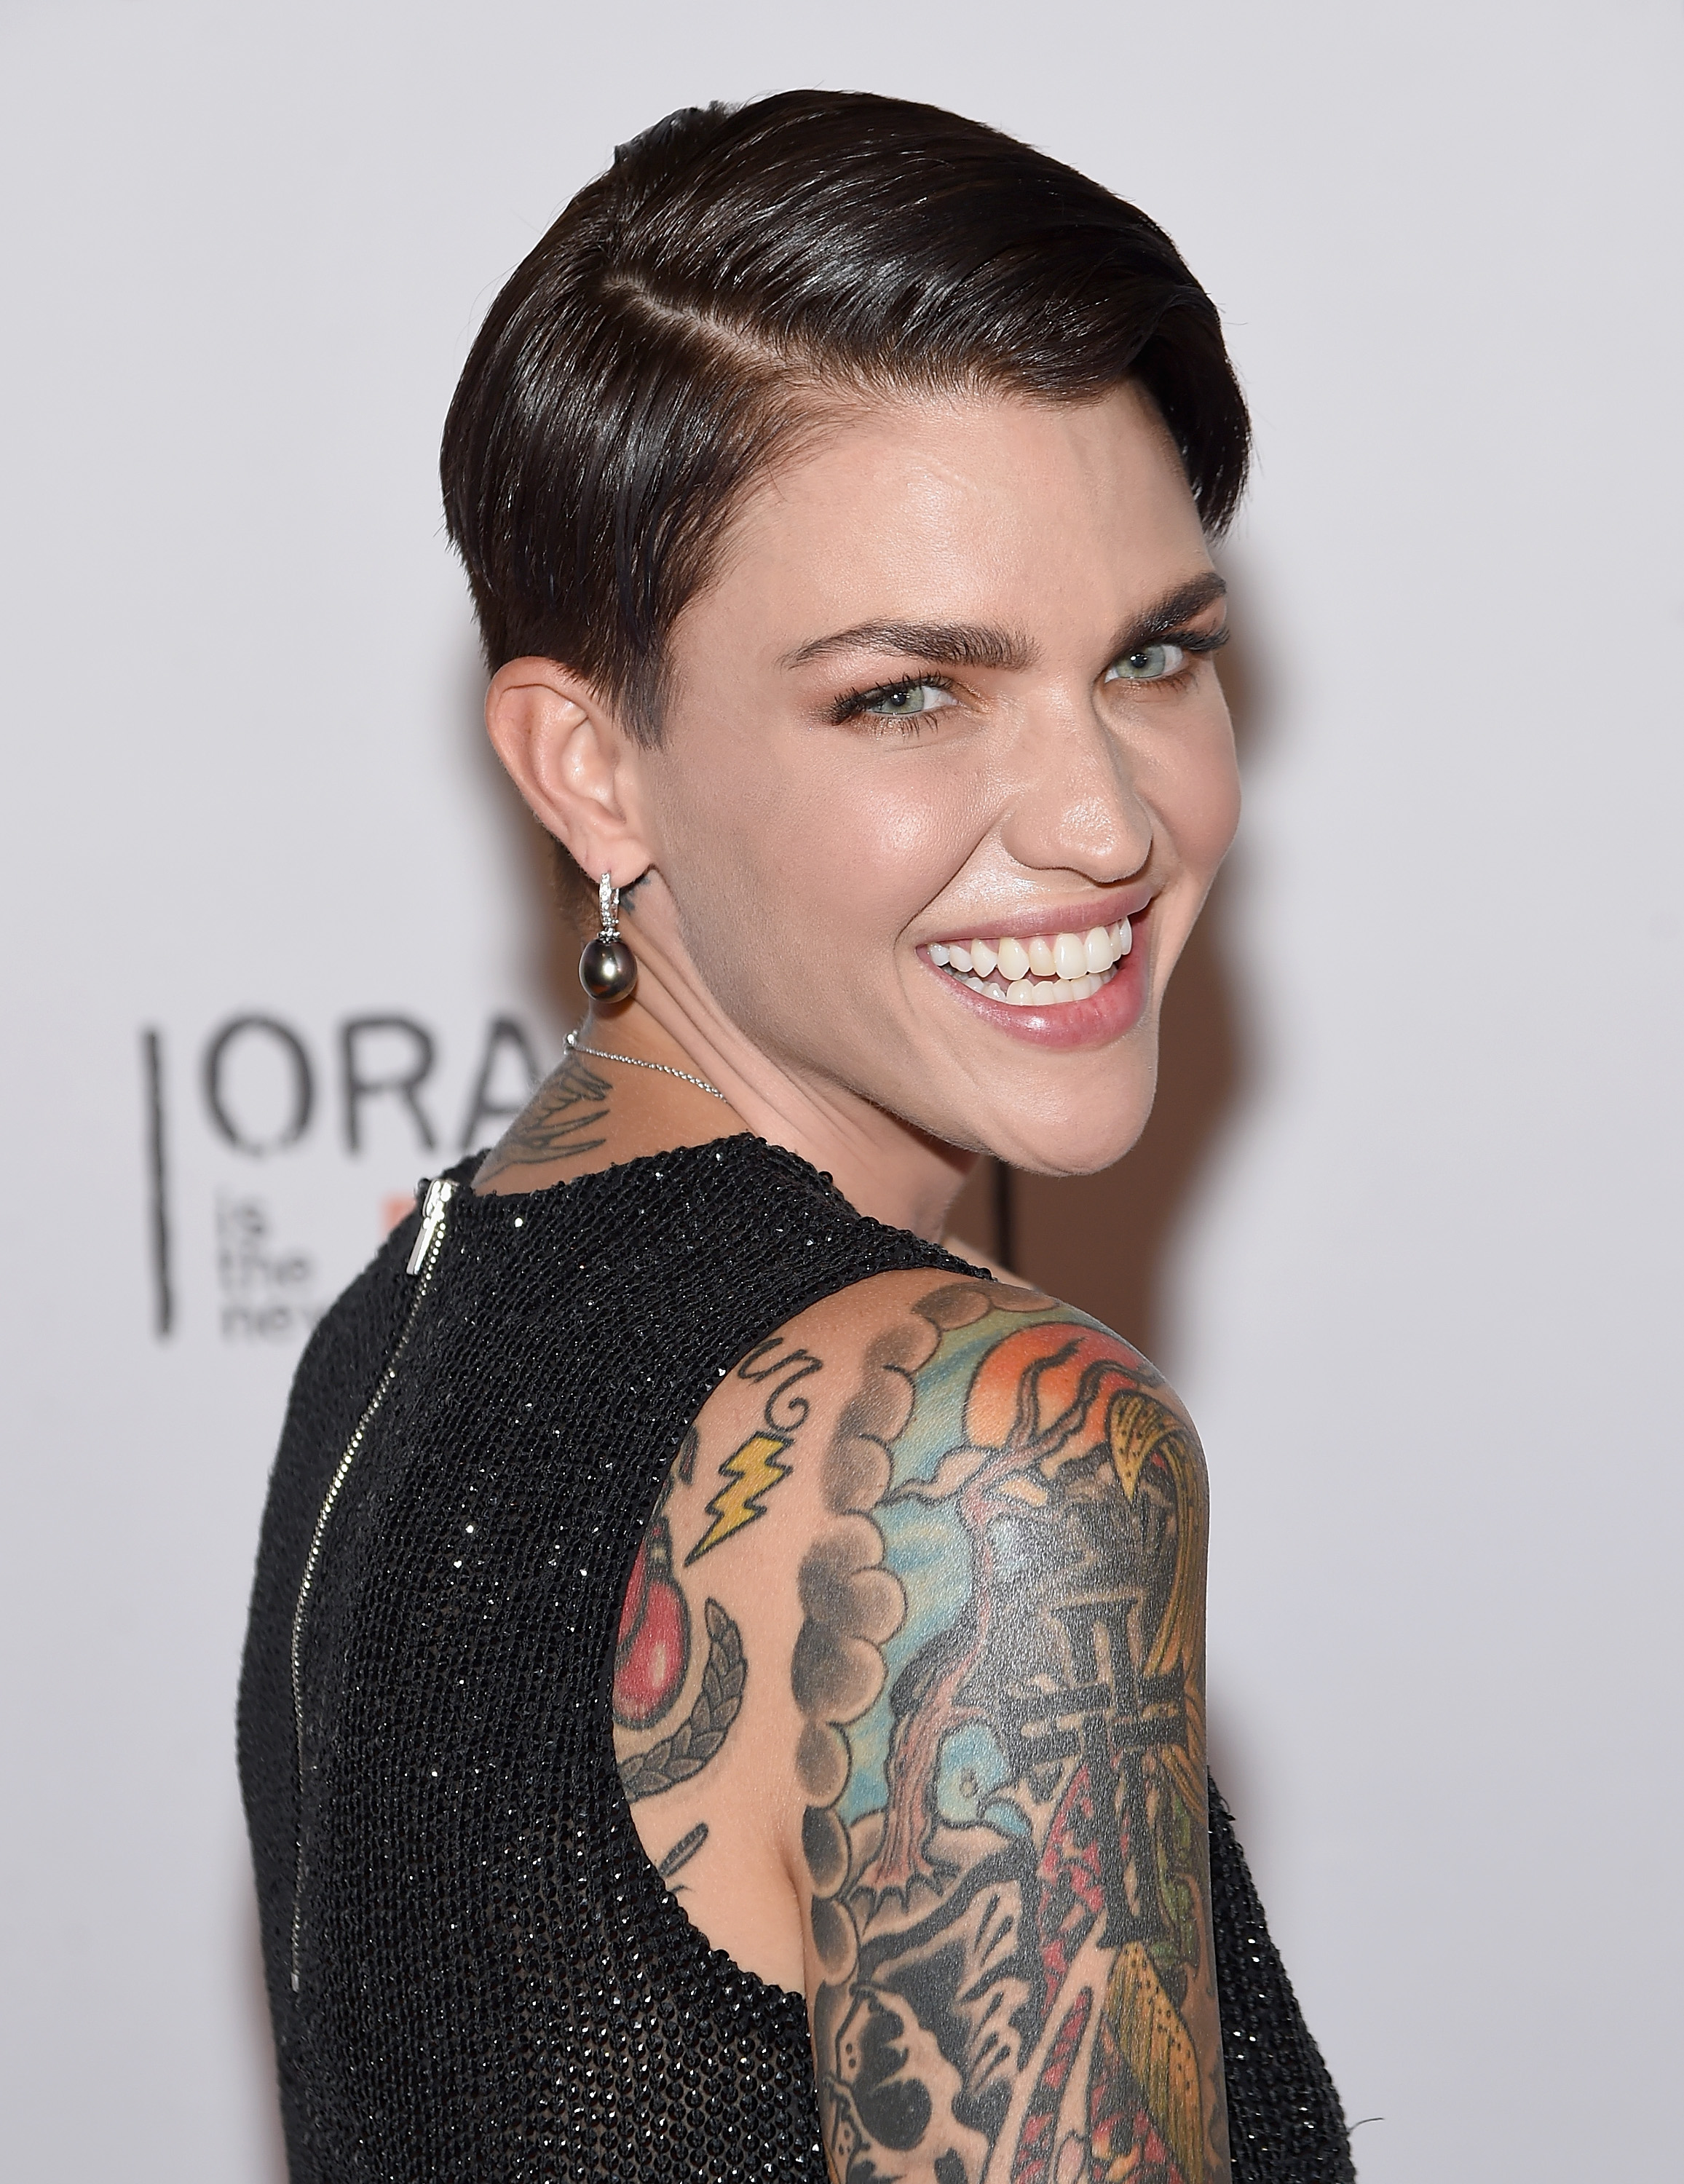 7 Ruby Rose Inspired Tattoos That Will Give A Subtle Ode To